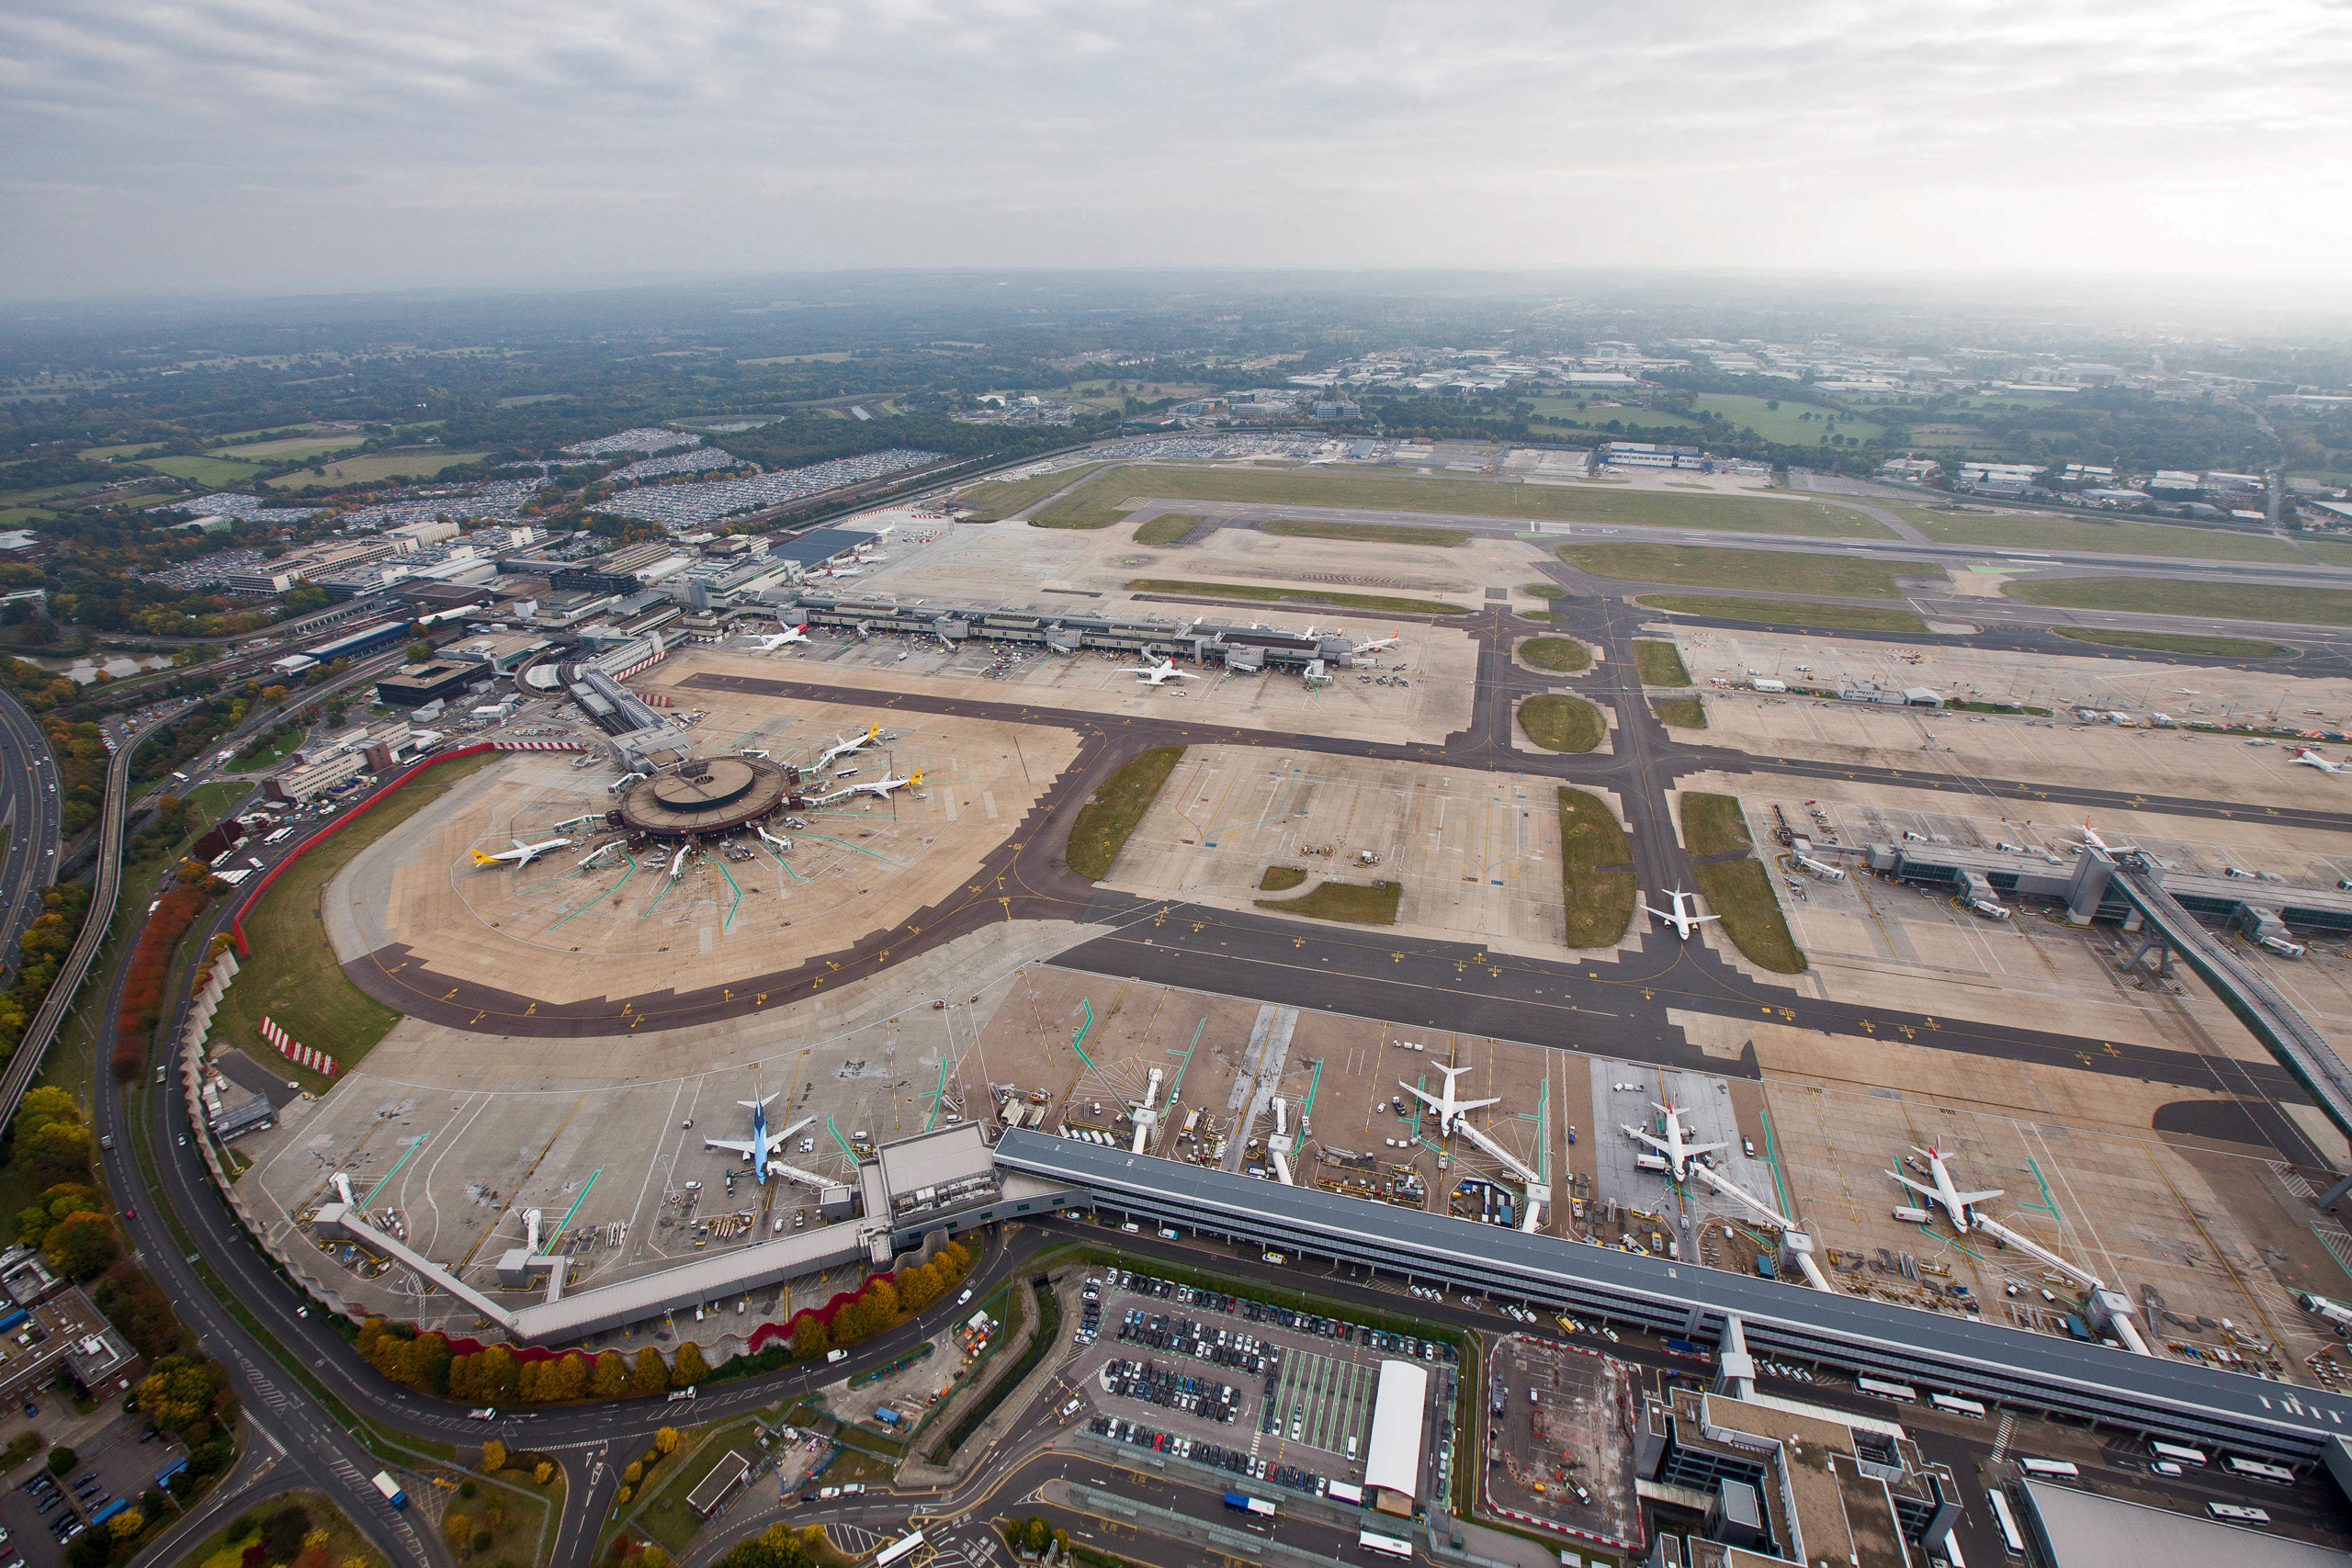 Passenger aircraft sit parked at the South Terminal at London Gatwick airport in this aerial view taken over Crawley, U.K., on Monday, Oct. 24, 2016. The U.K. government will decide next week whether to expand London's main airport, Heathrow, or its rival Gatwick putting an end to decades of prevarication over what has become one of the most contentious issues in British politics. Photographer: Jason Alden/Bloomberg via Getty Images